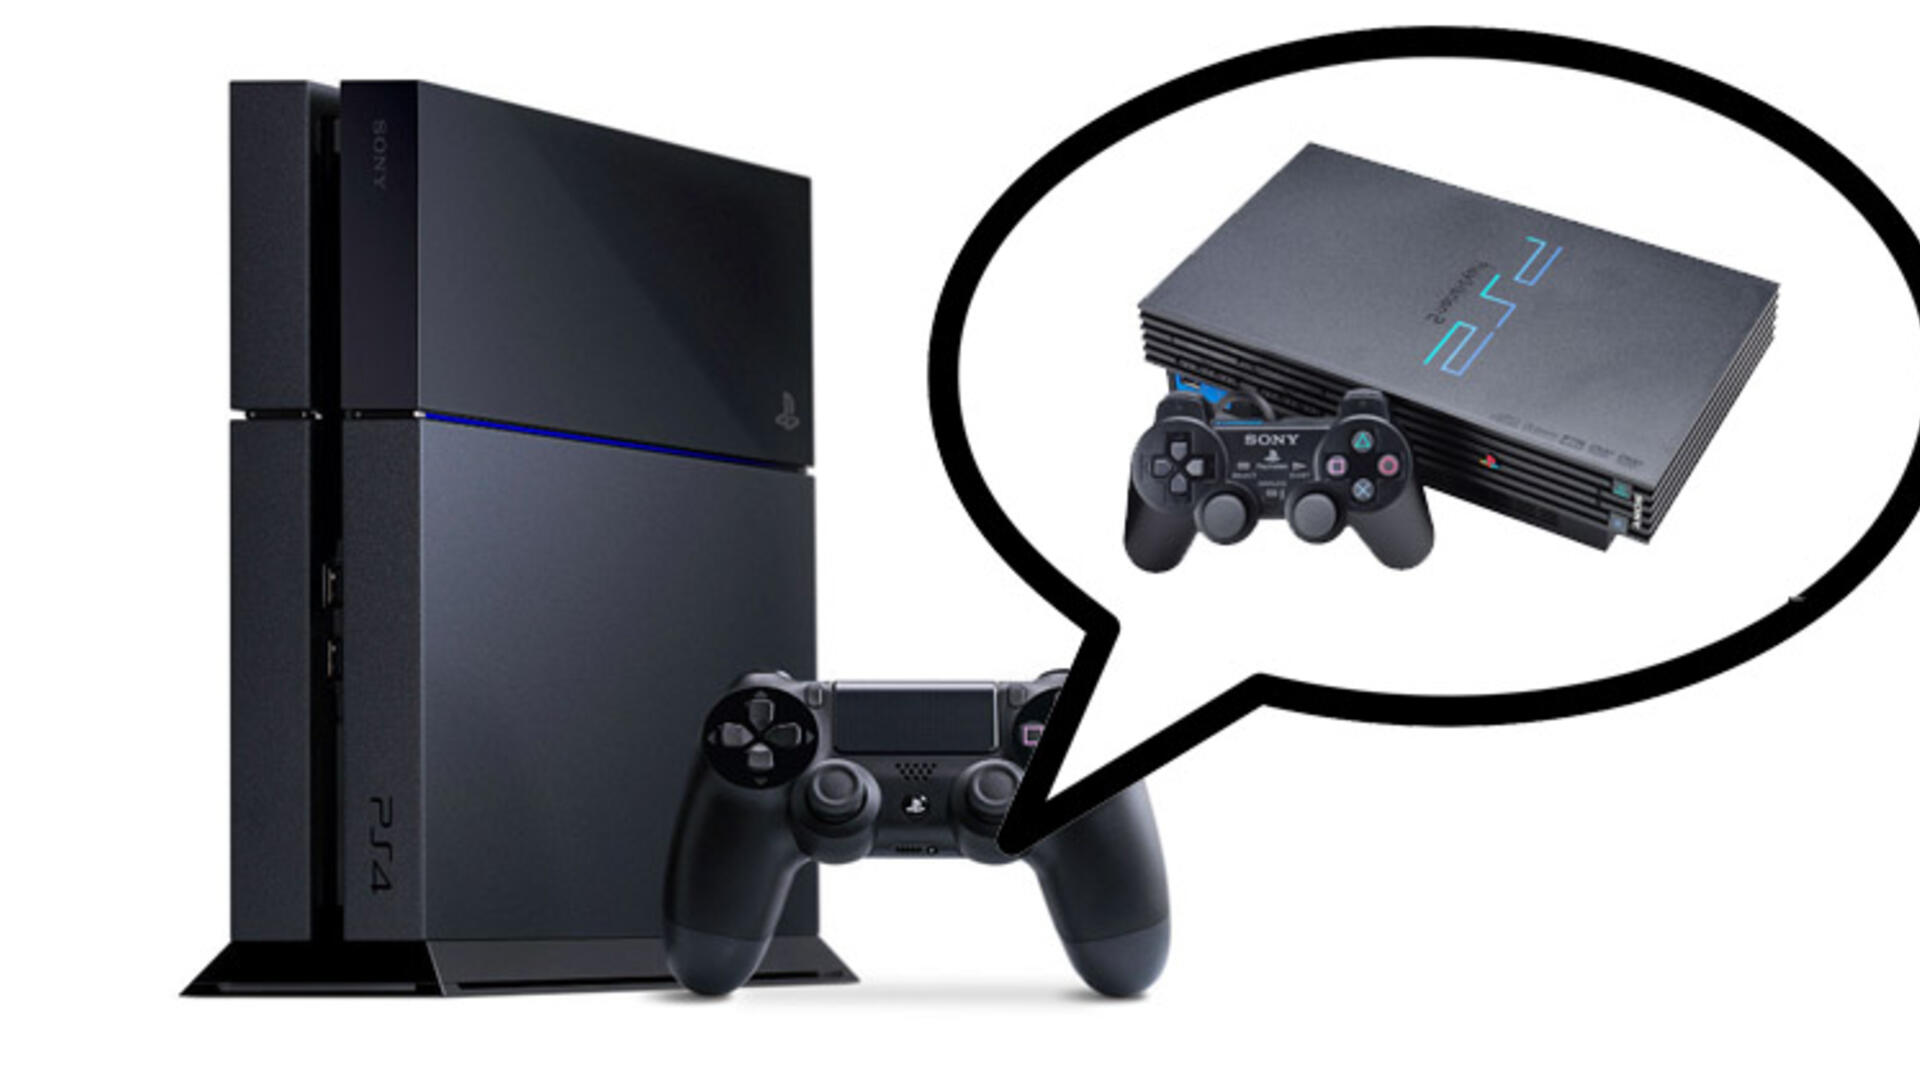 PlayStation 2 on PlayStation 4: The Good, the Bad, the Plain